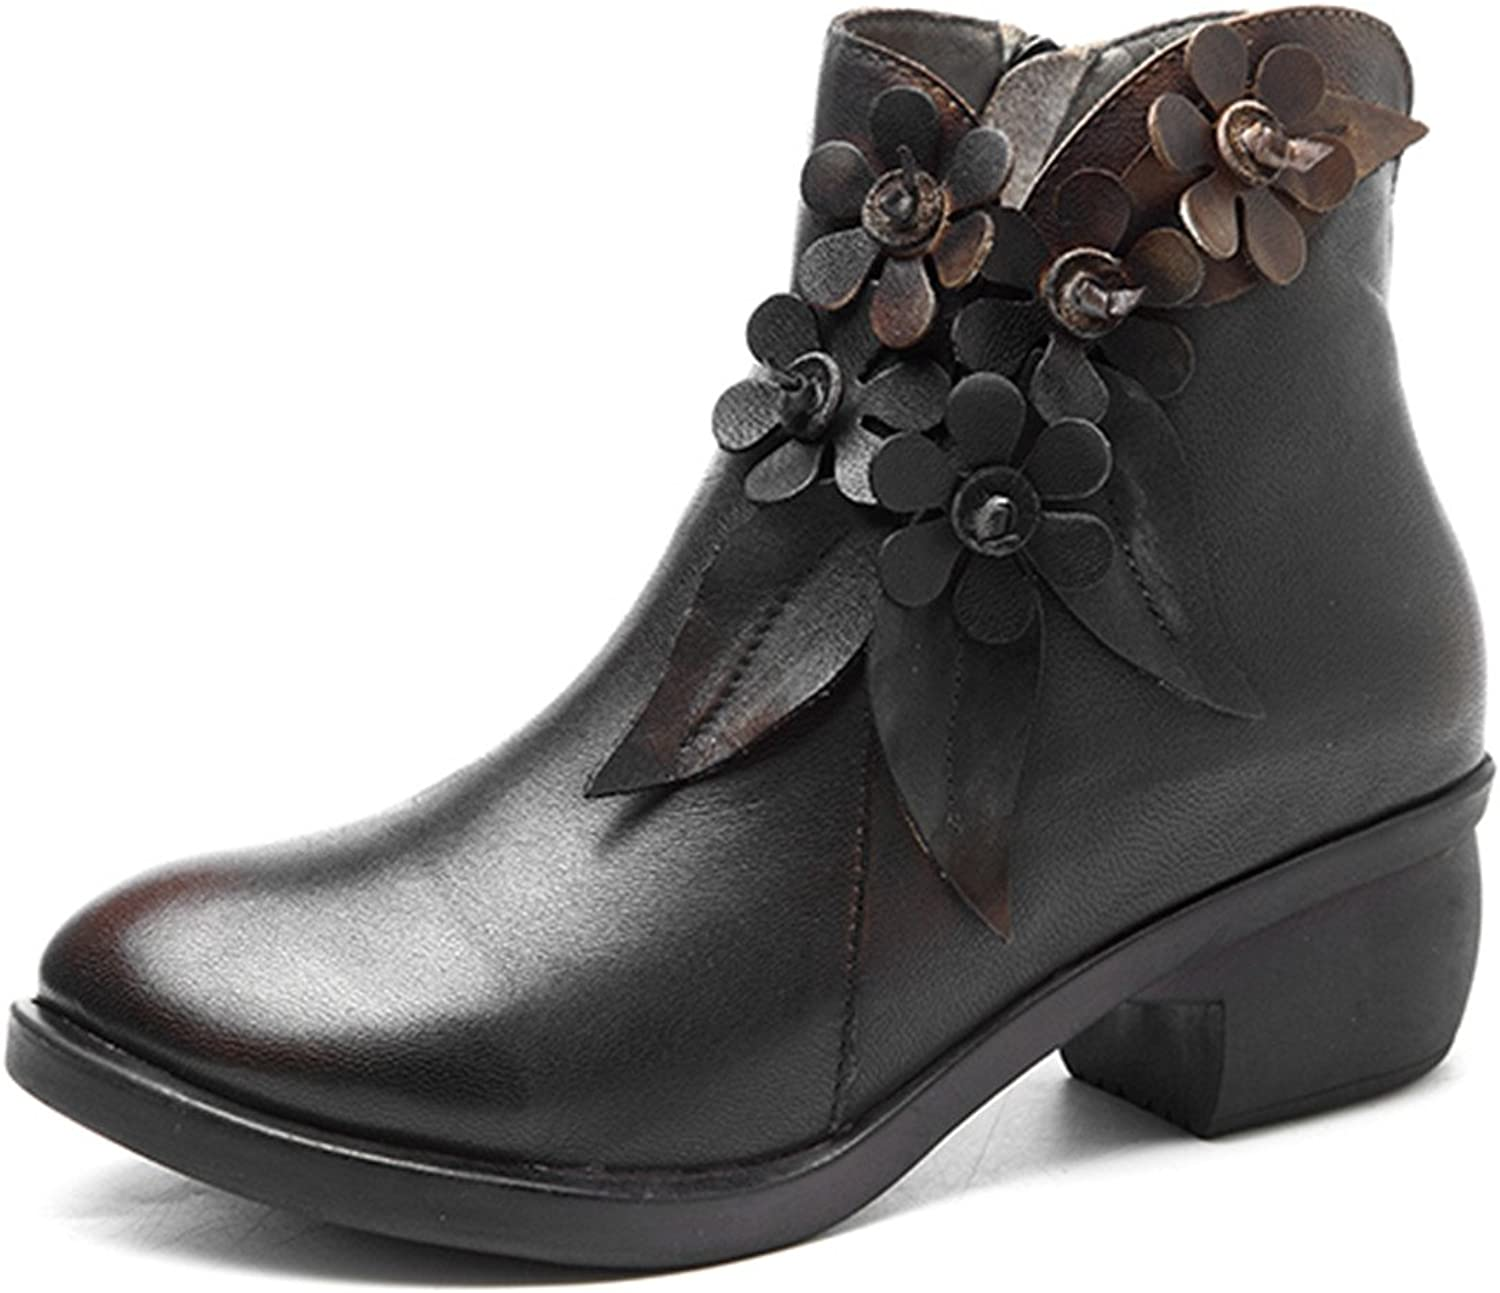 Socofy Leather Ankle Bootie, Women's Vintage Handmade Fashion Leather Boot pink Floral shoes Oxford Boots Dark Grey 9 B(M) US